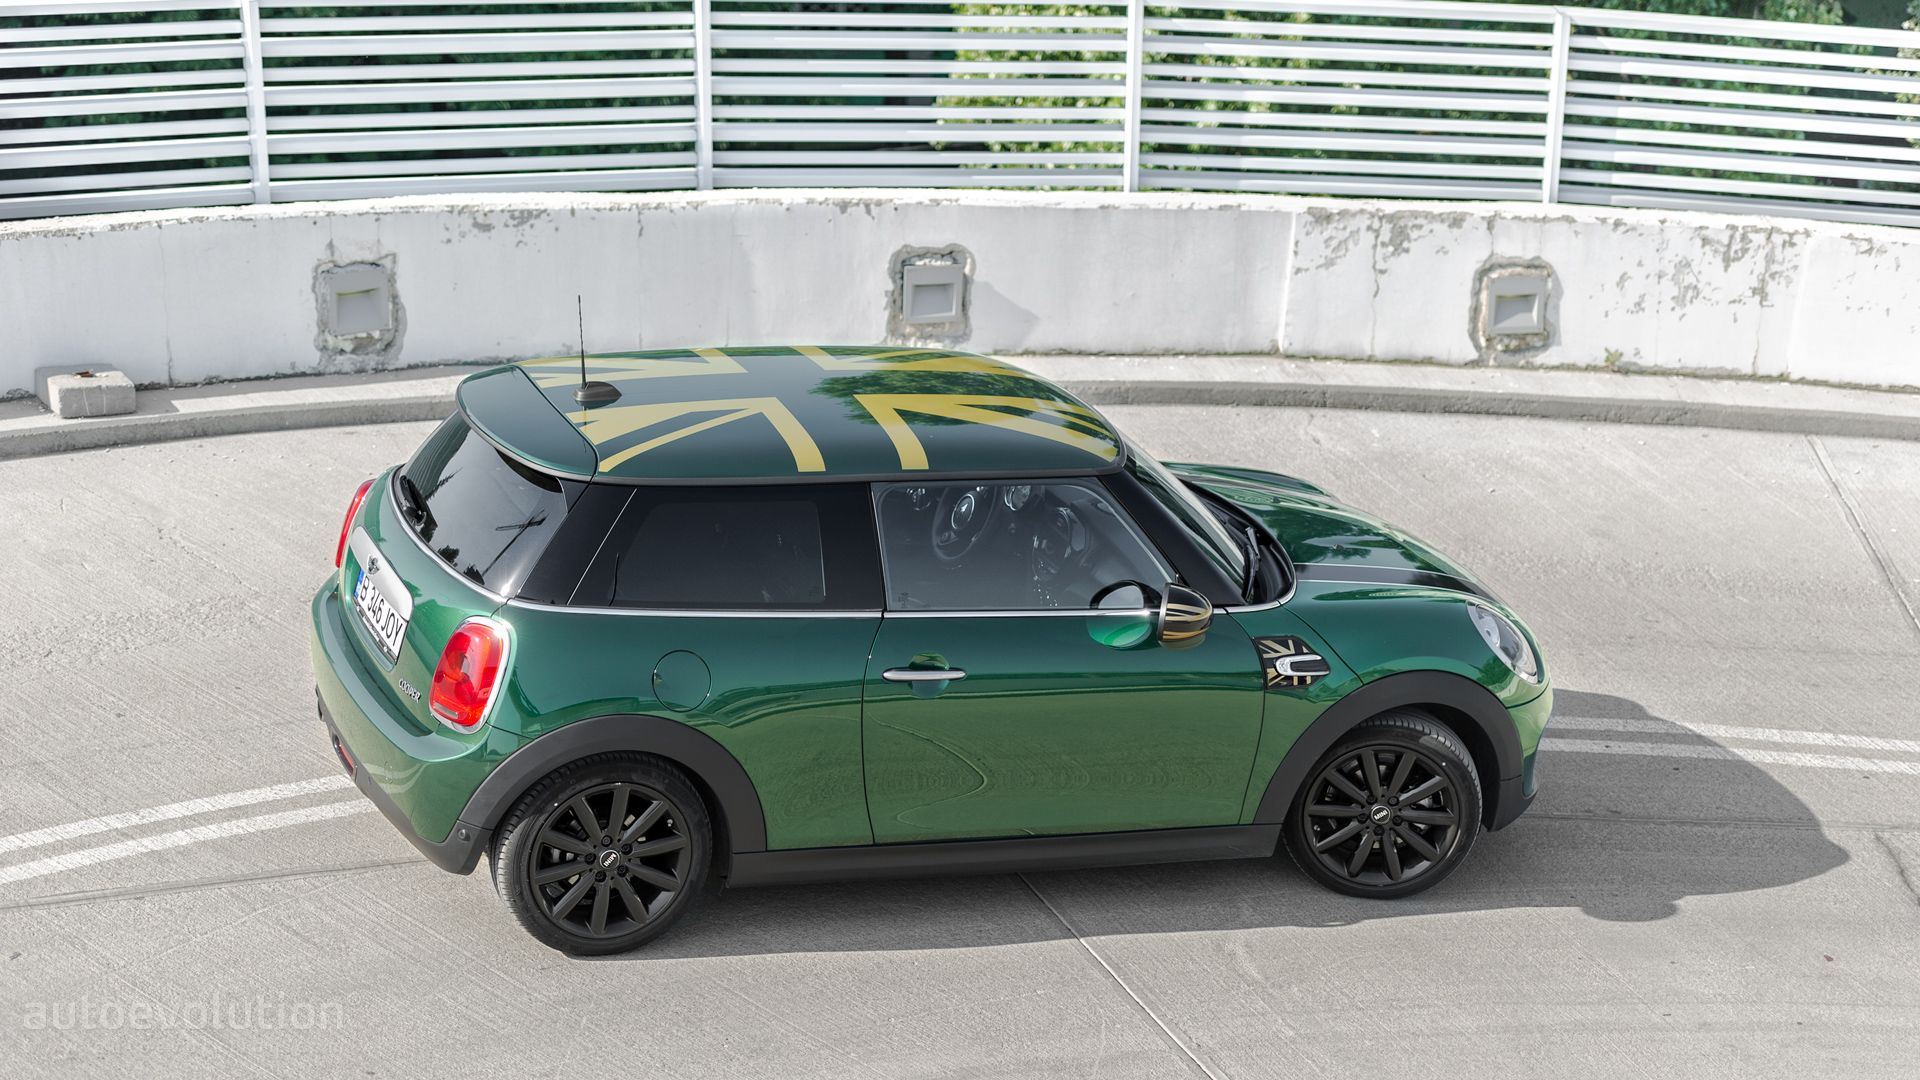 2015 mini cooper s safety rating release date price and specs. Black Bedroom Furniture Sets. Home Design Ideas